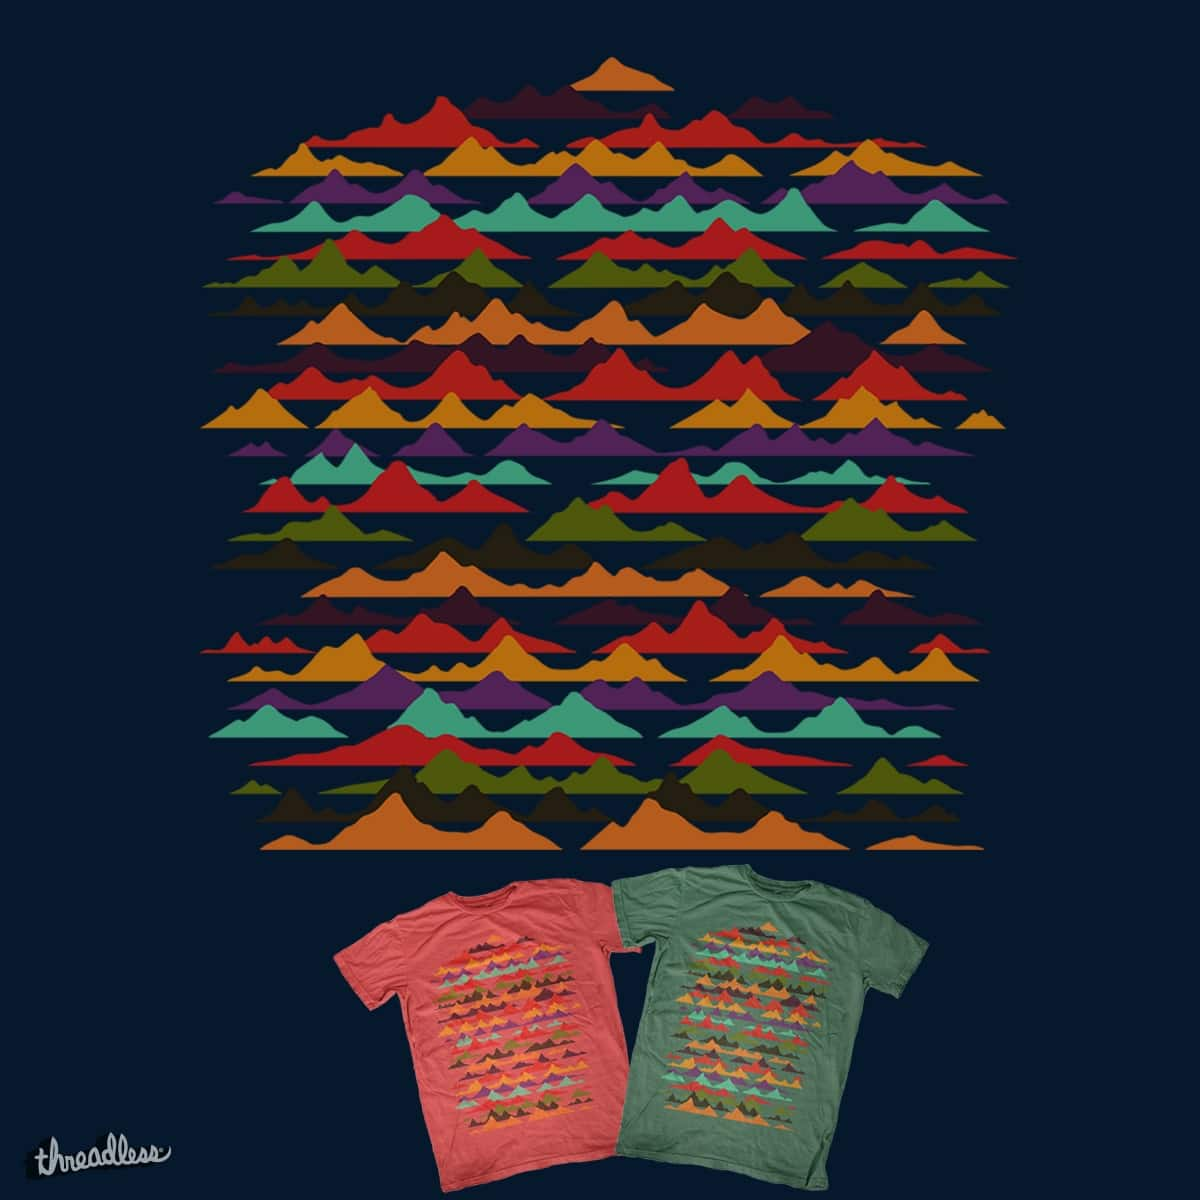 Mounty by venoxy on Threadless